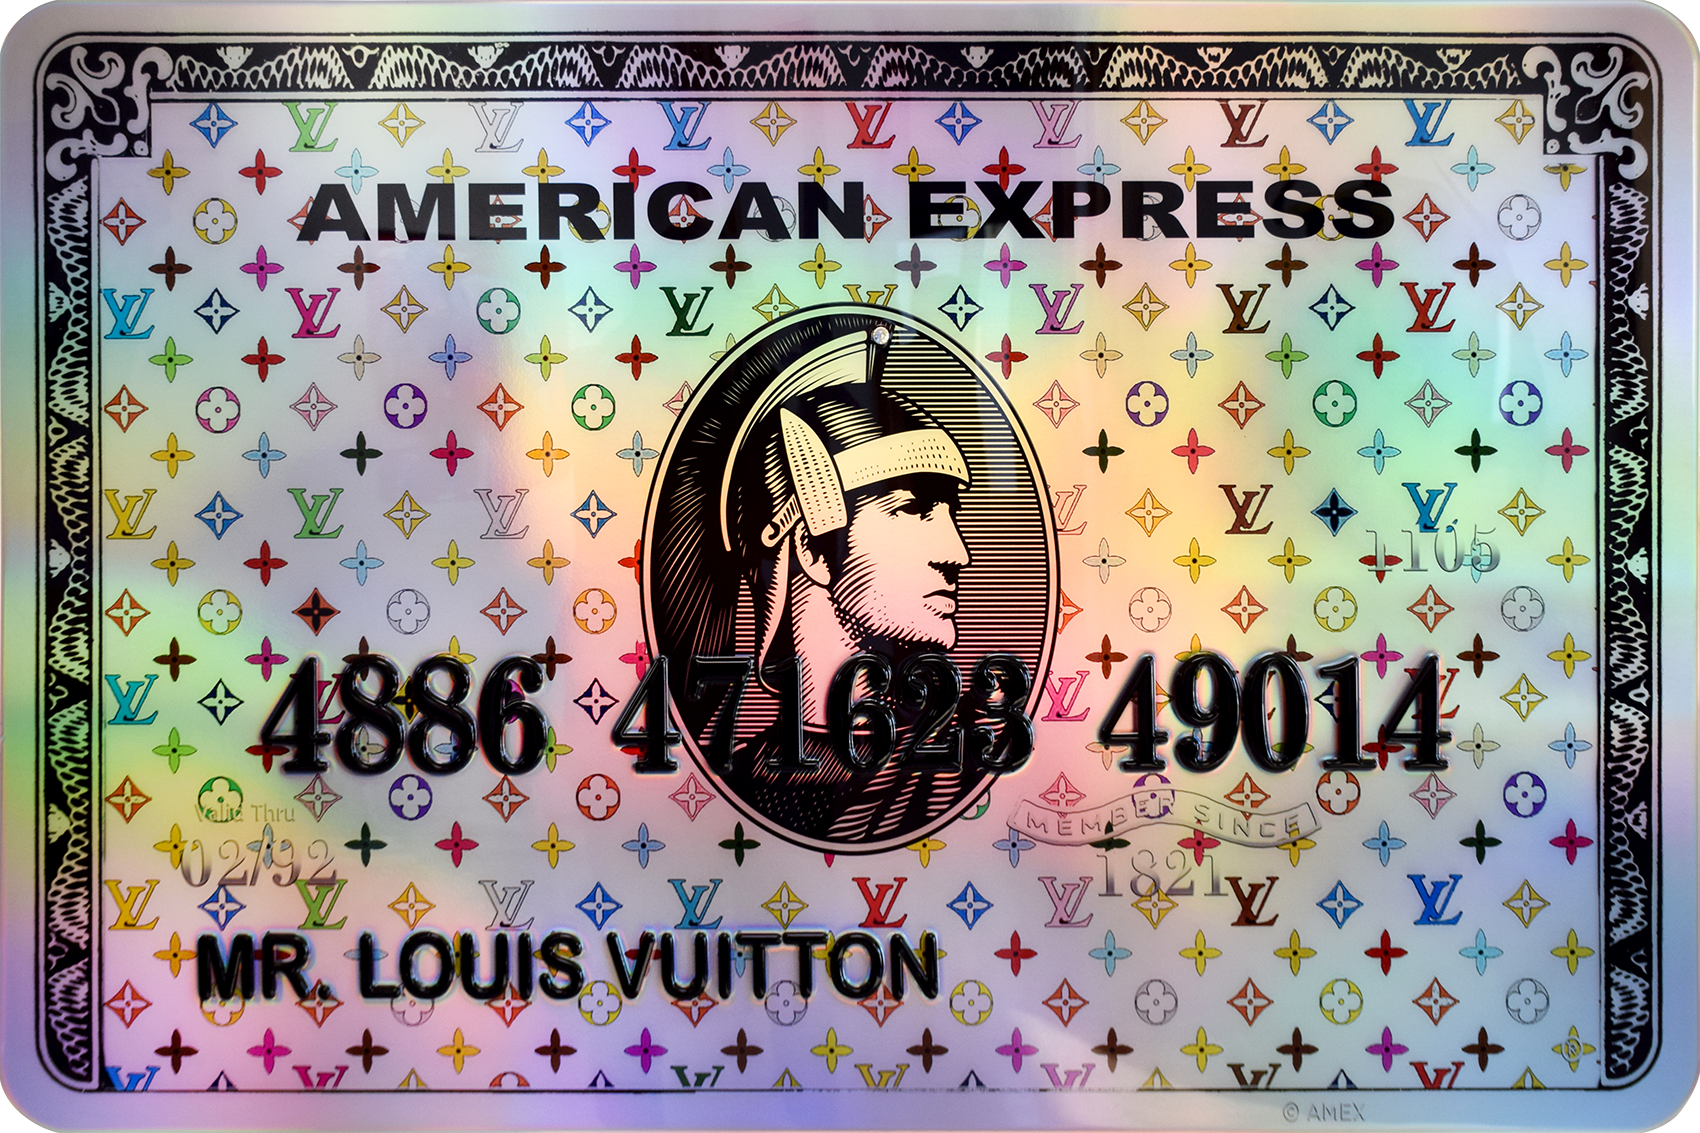 Diederik - AMEX (Mr. Louis Vuitton) , 4504-016-059